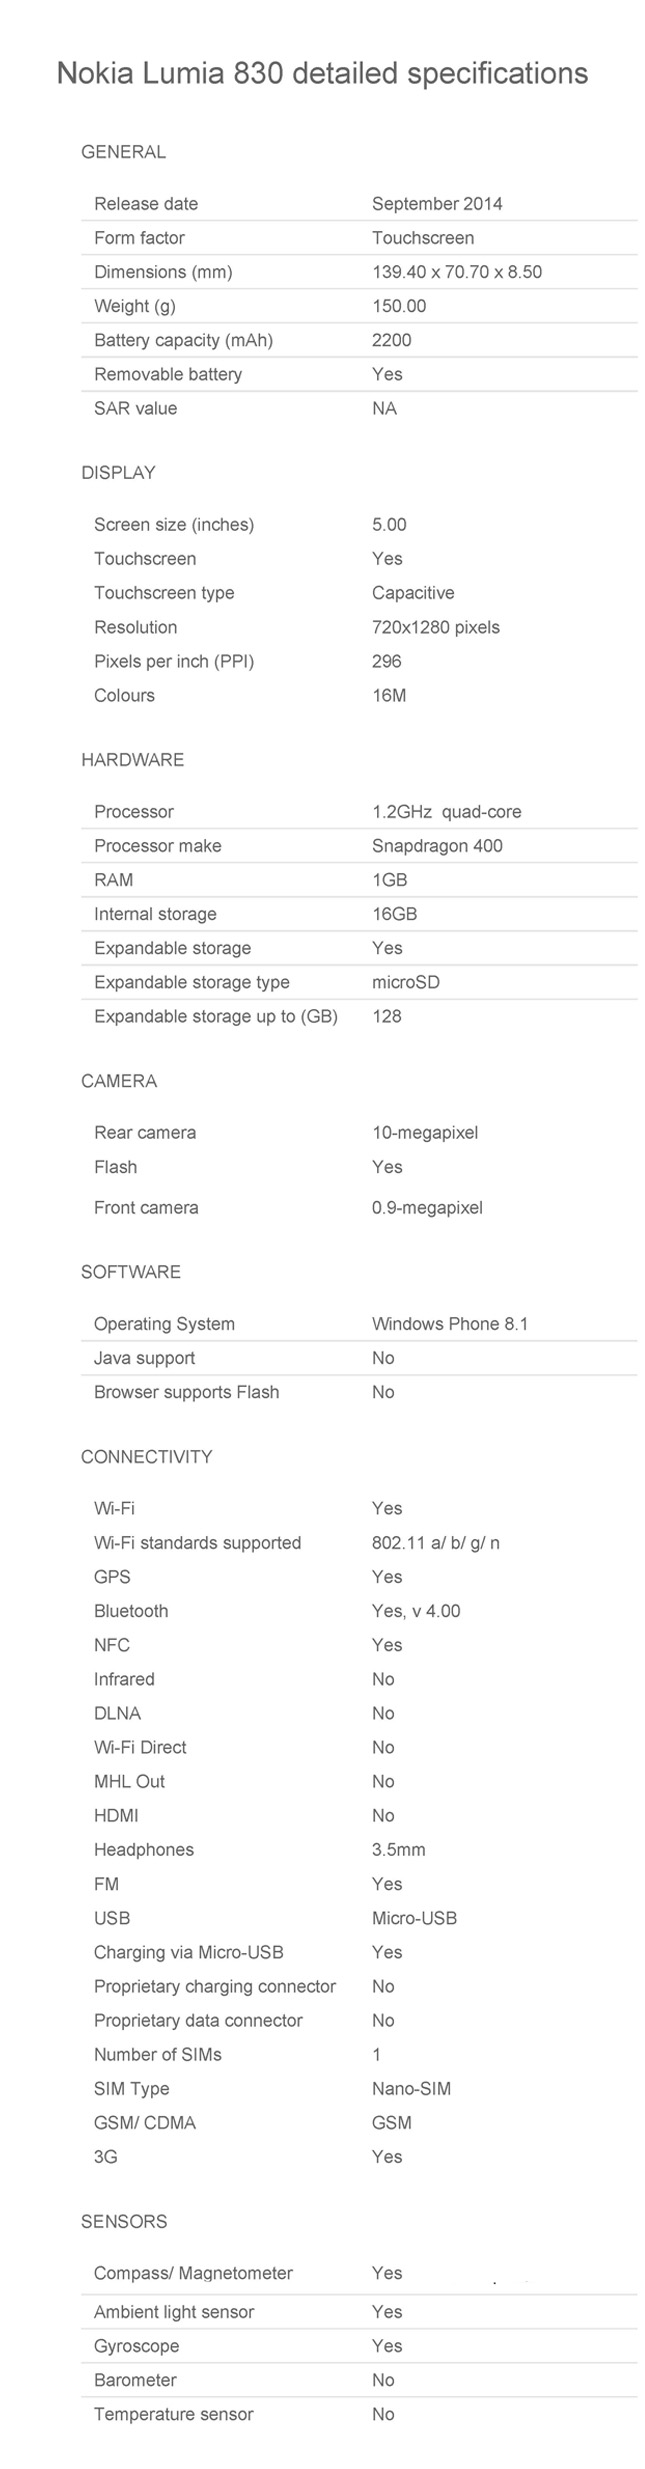 Nokia Lumia 830 detailed Specifications